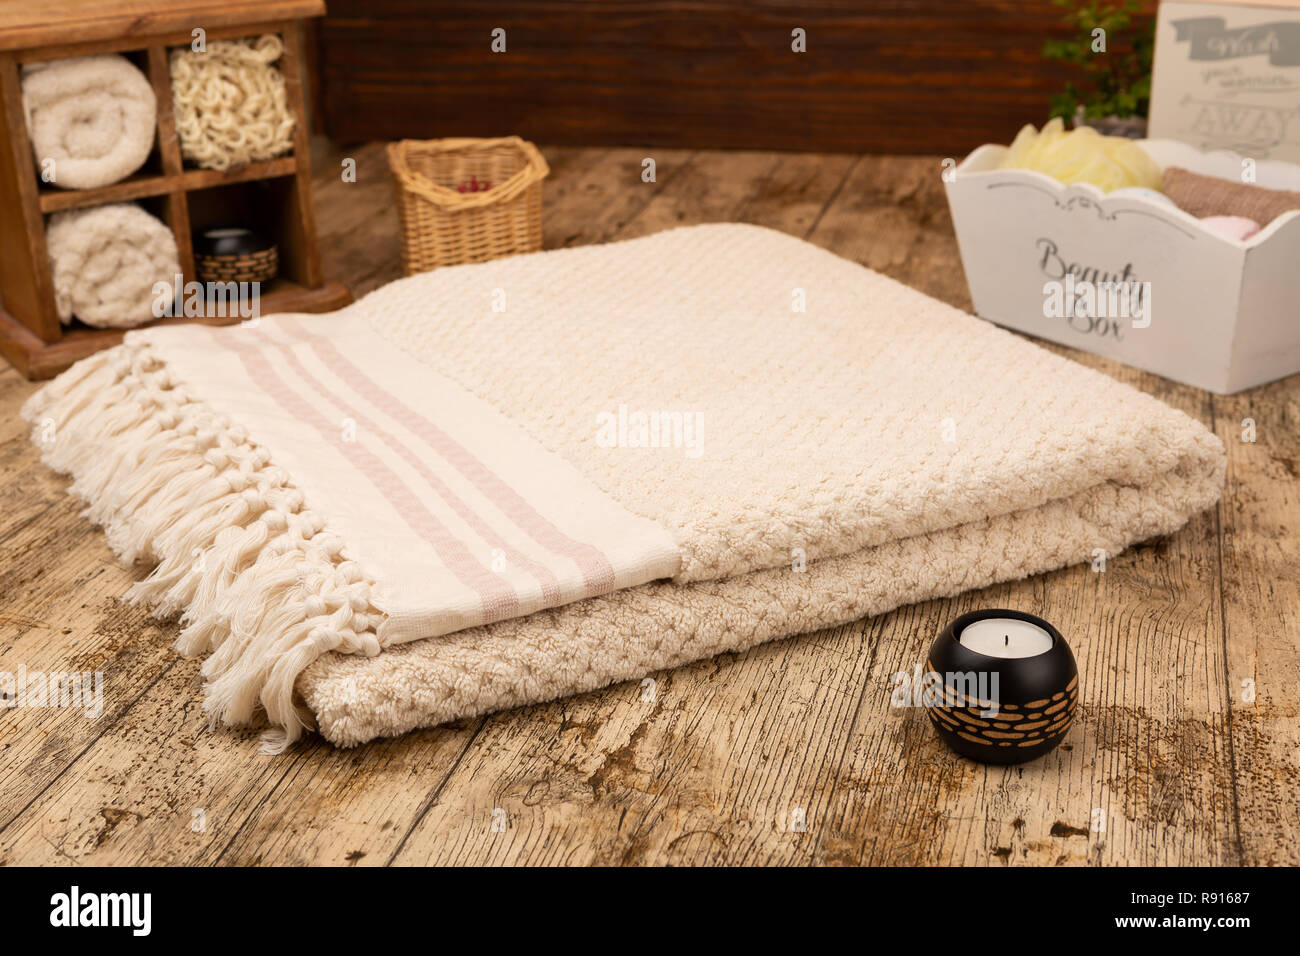 Large handwoven cotton bath towel on wooden background surrounded by bathroom props - Stock Image